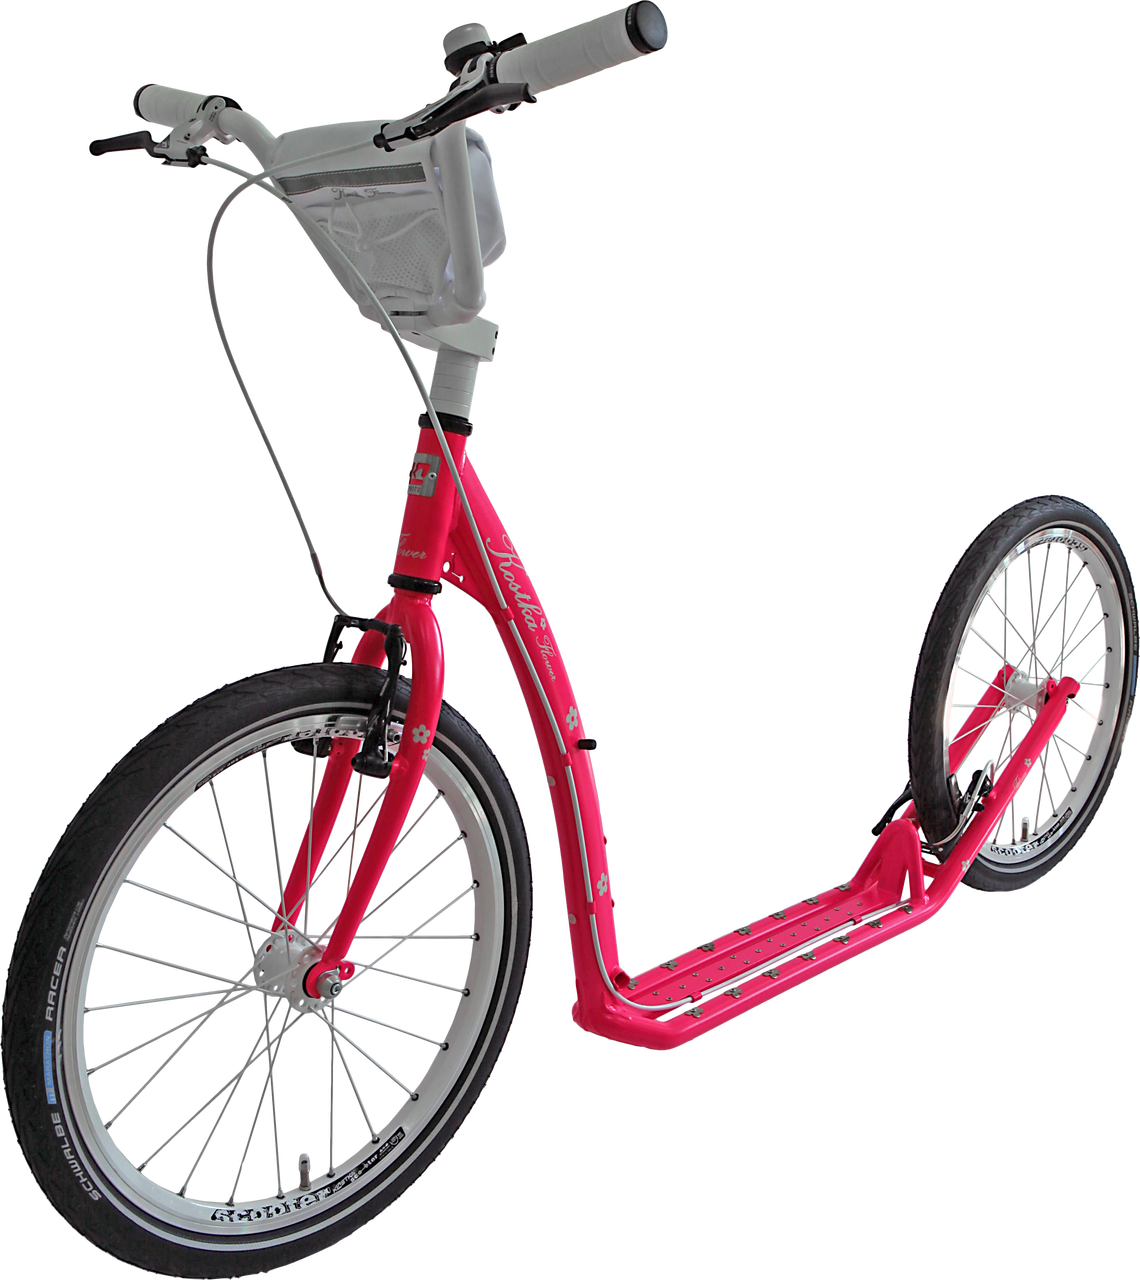 Kick Scooter Background PNG